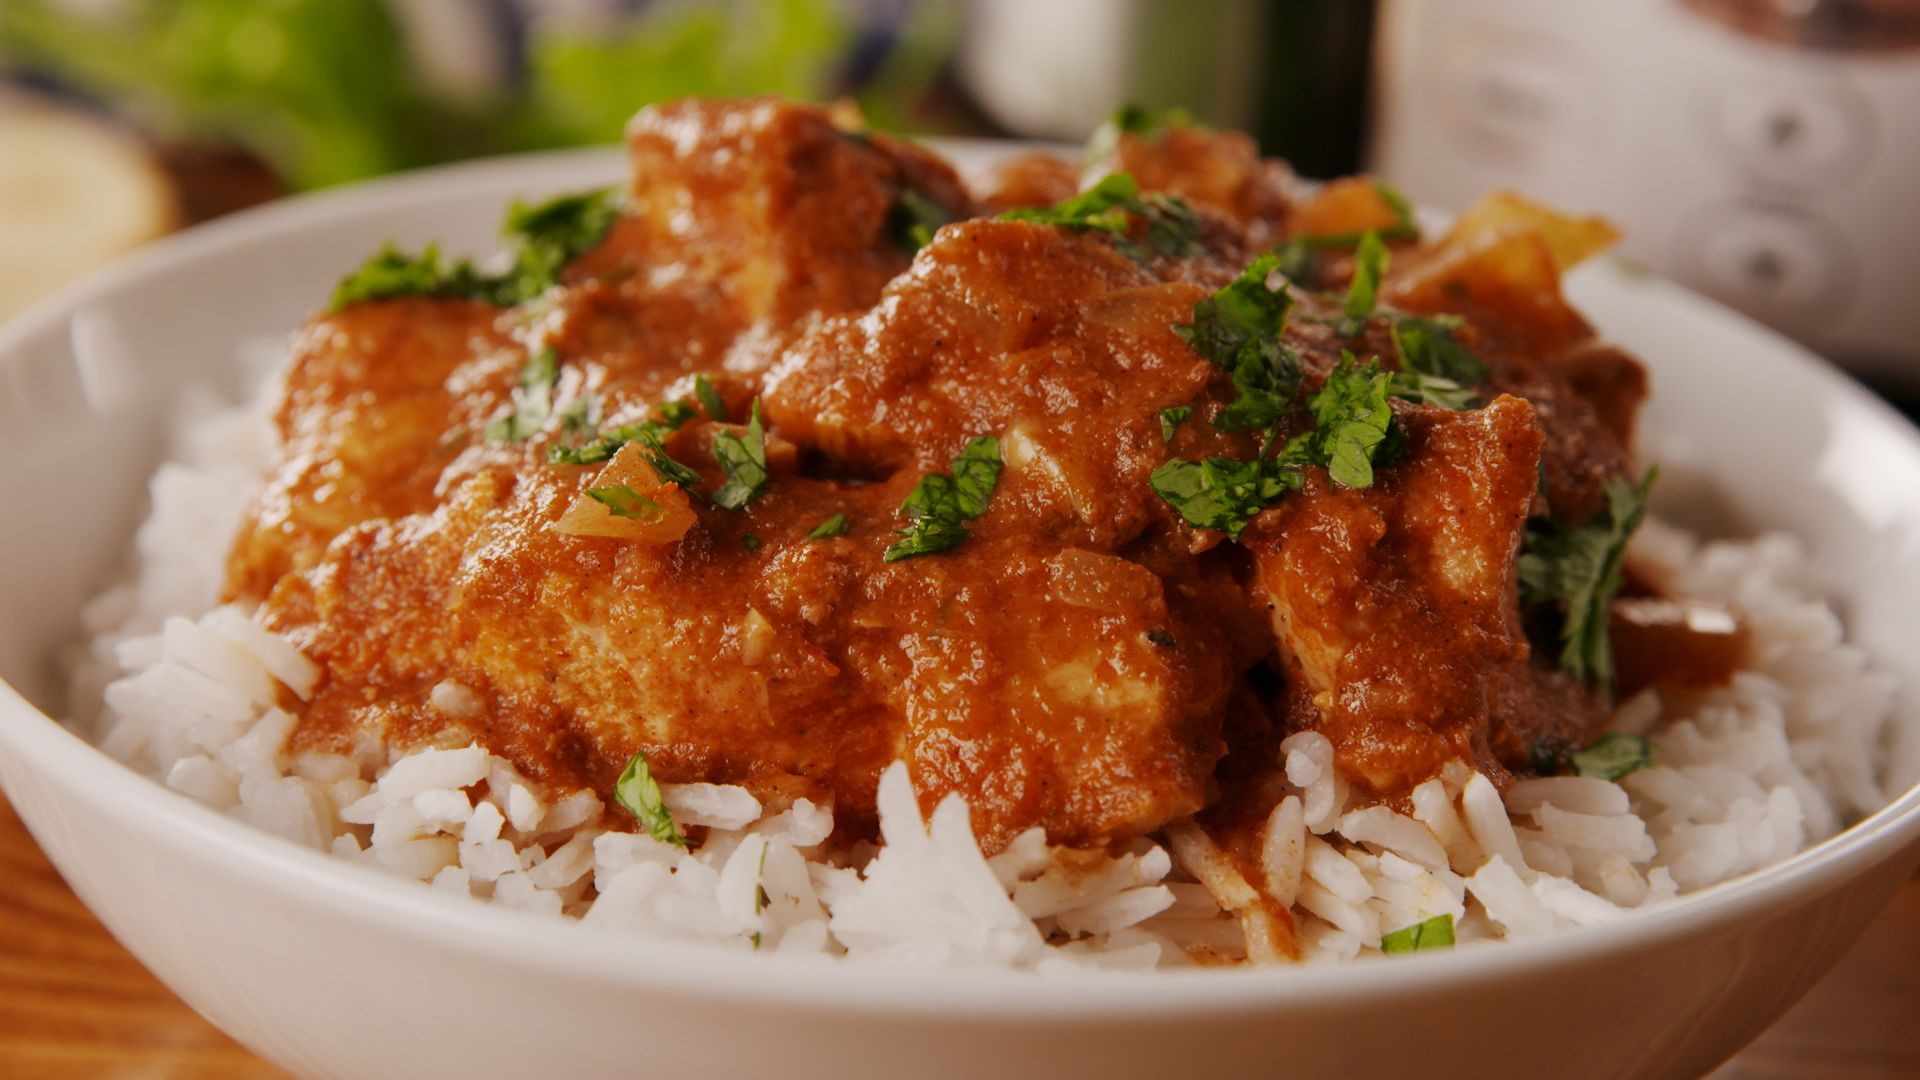 10 Best Slow Cooker Indian Recipes Easy Crockpot Indian Food